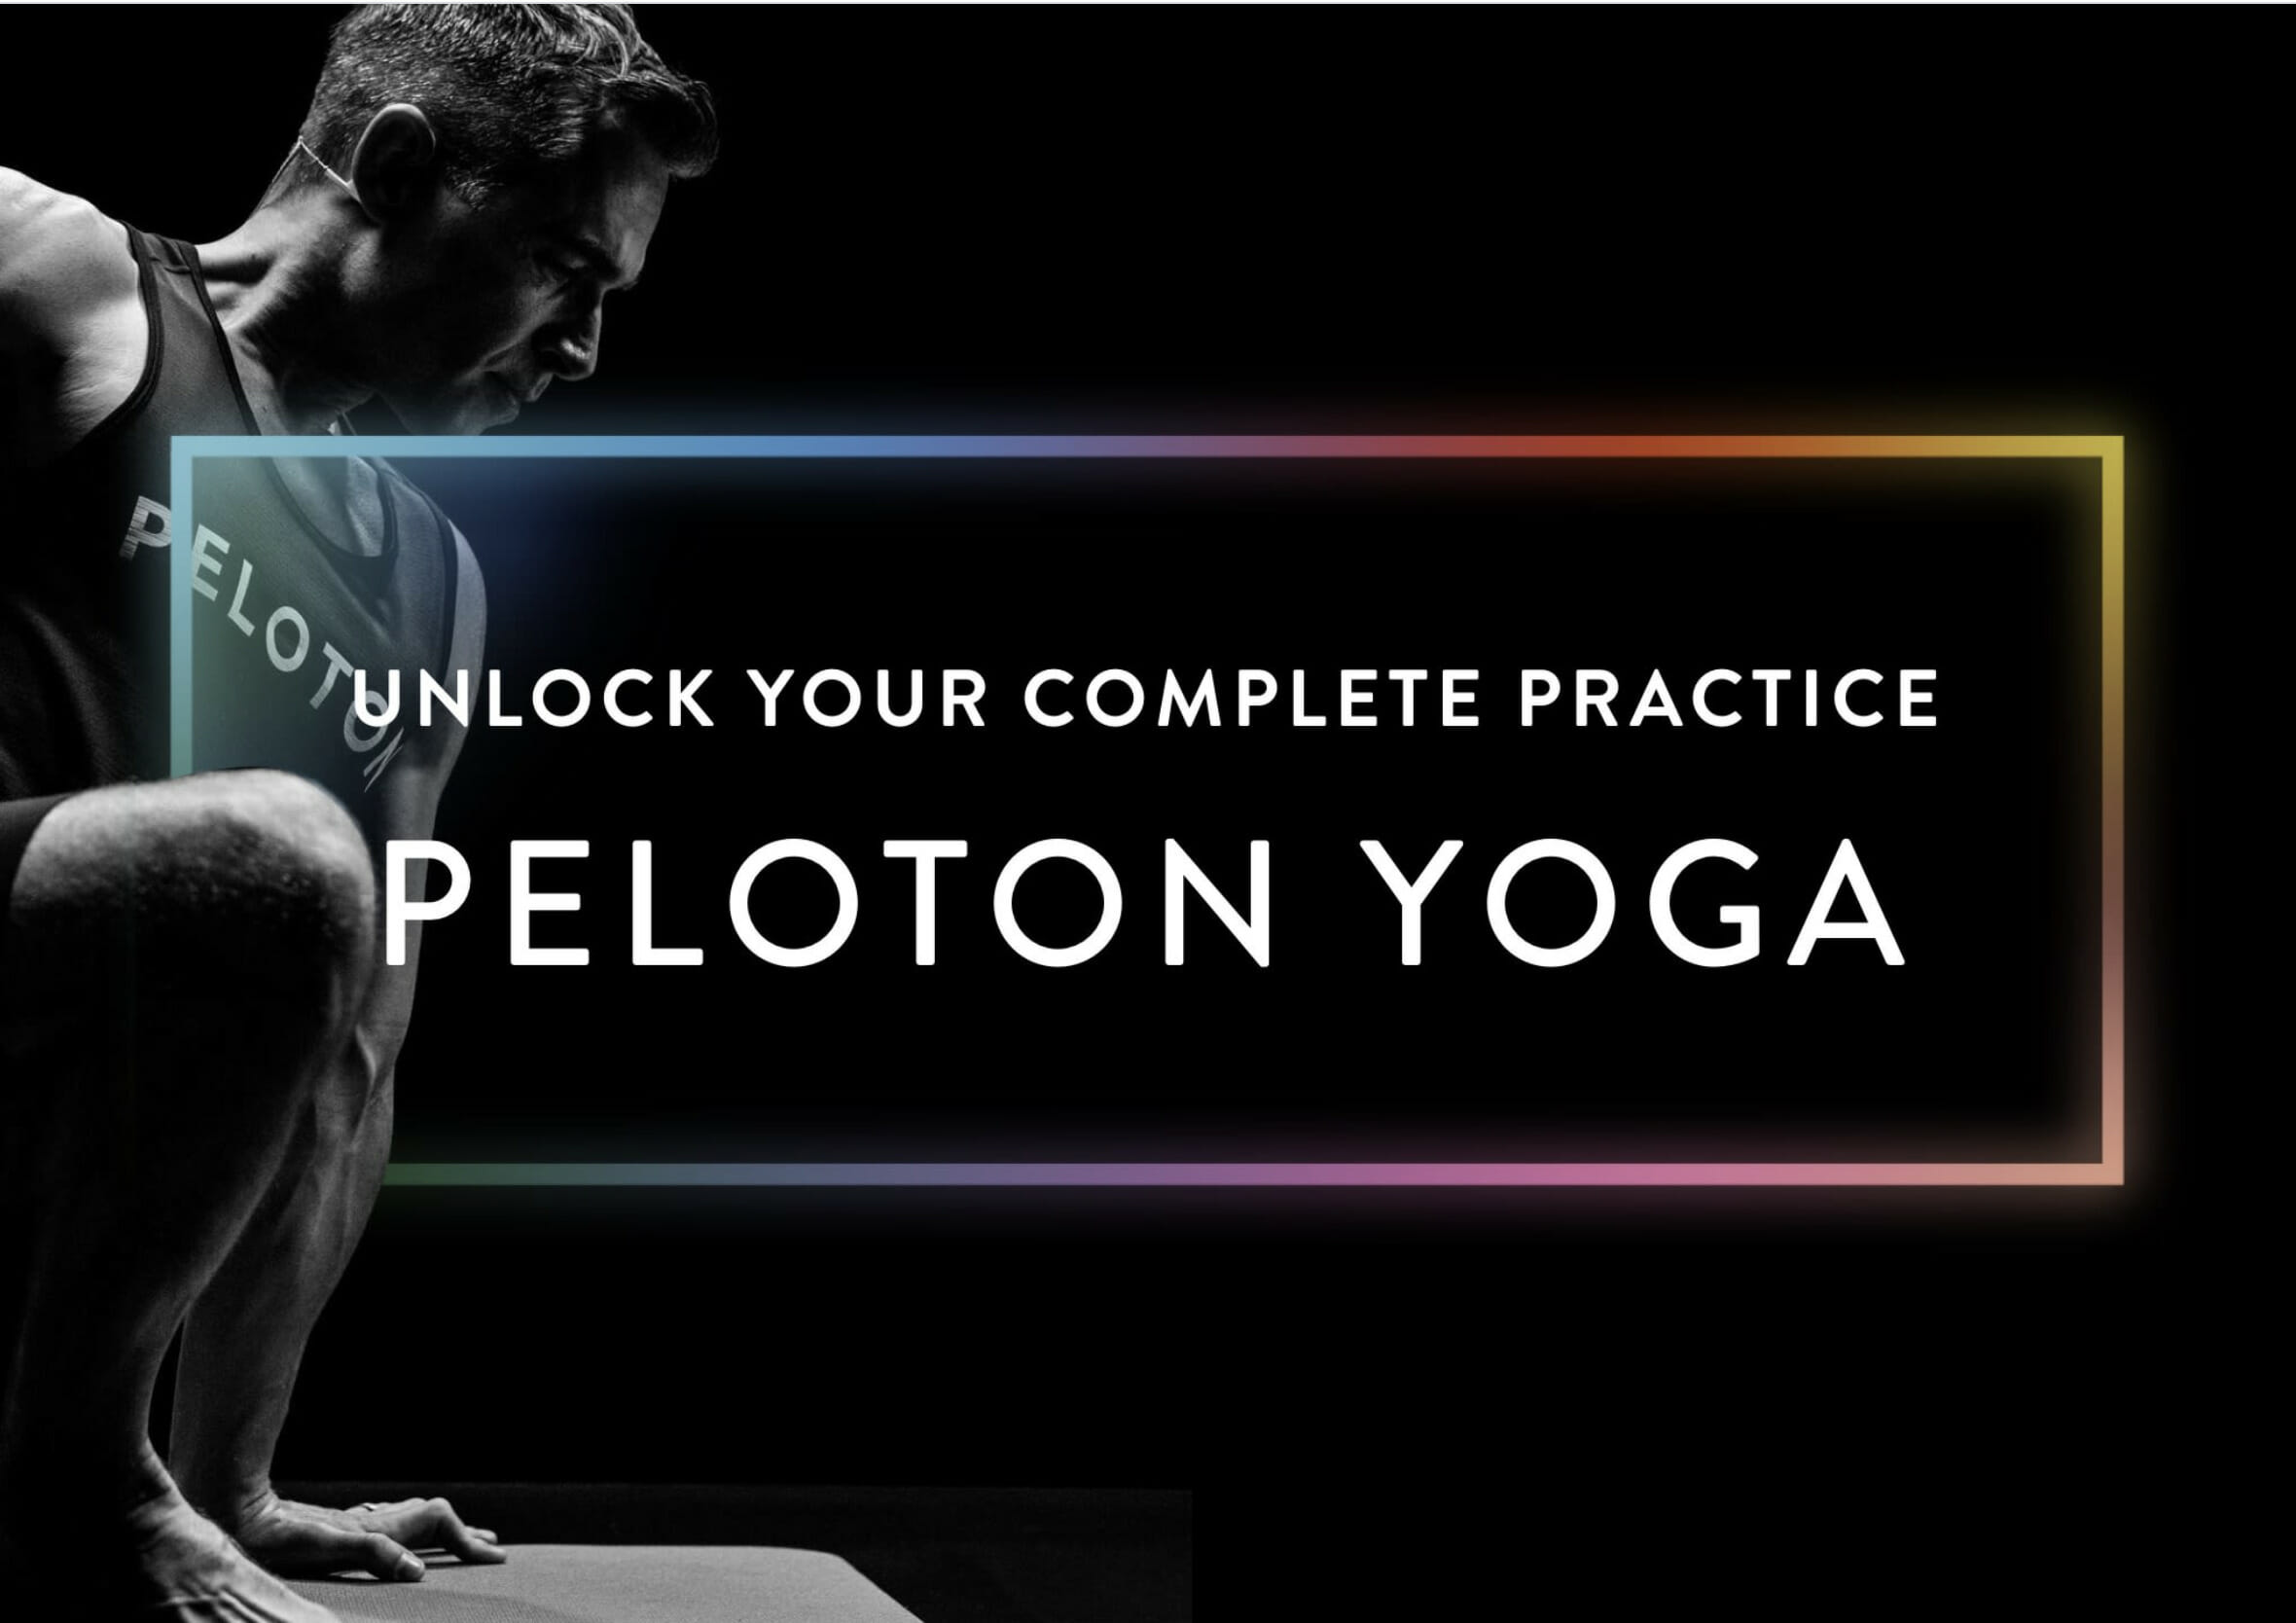 Image introducing the 5 new Peloton yoga collections